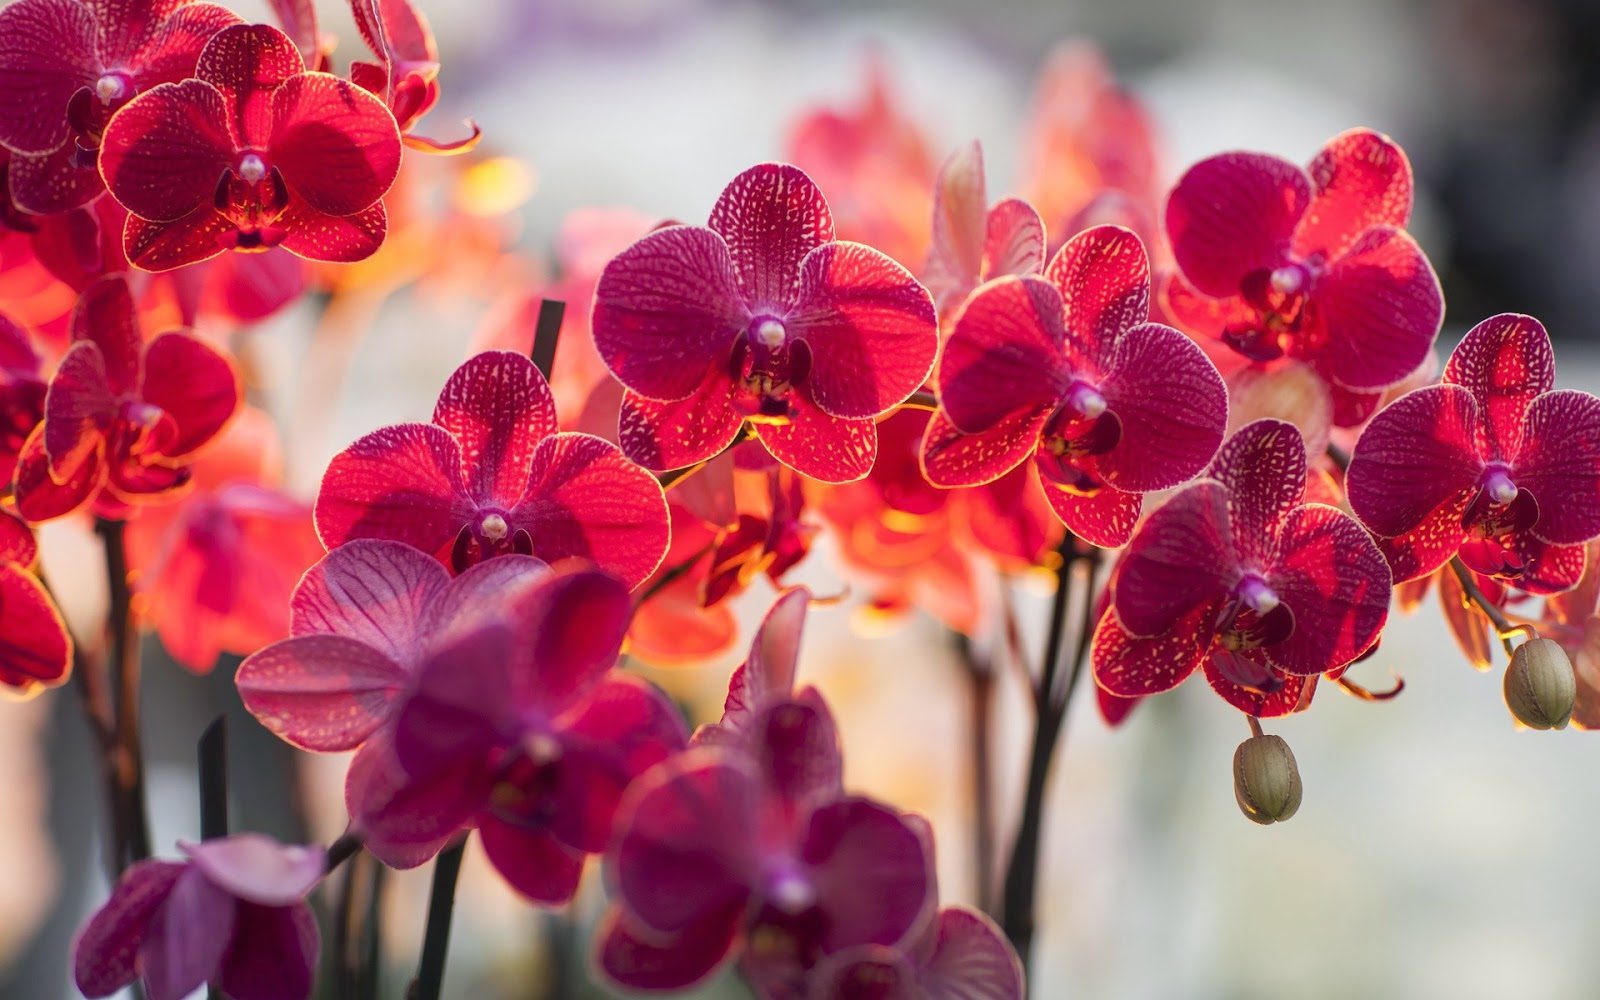 orchid wallpapers backgrounds images - photo #9